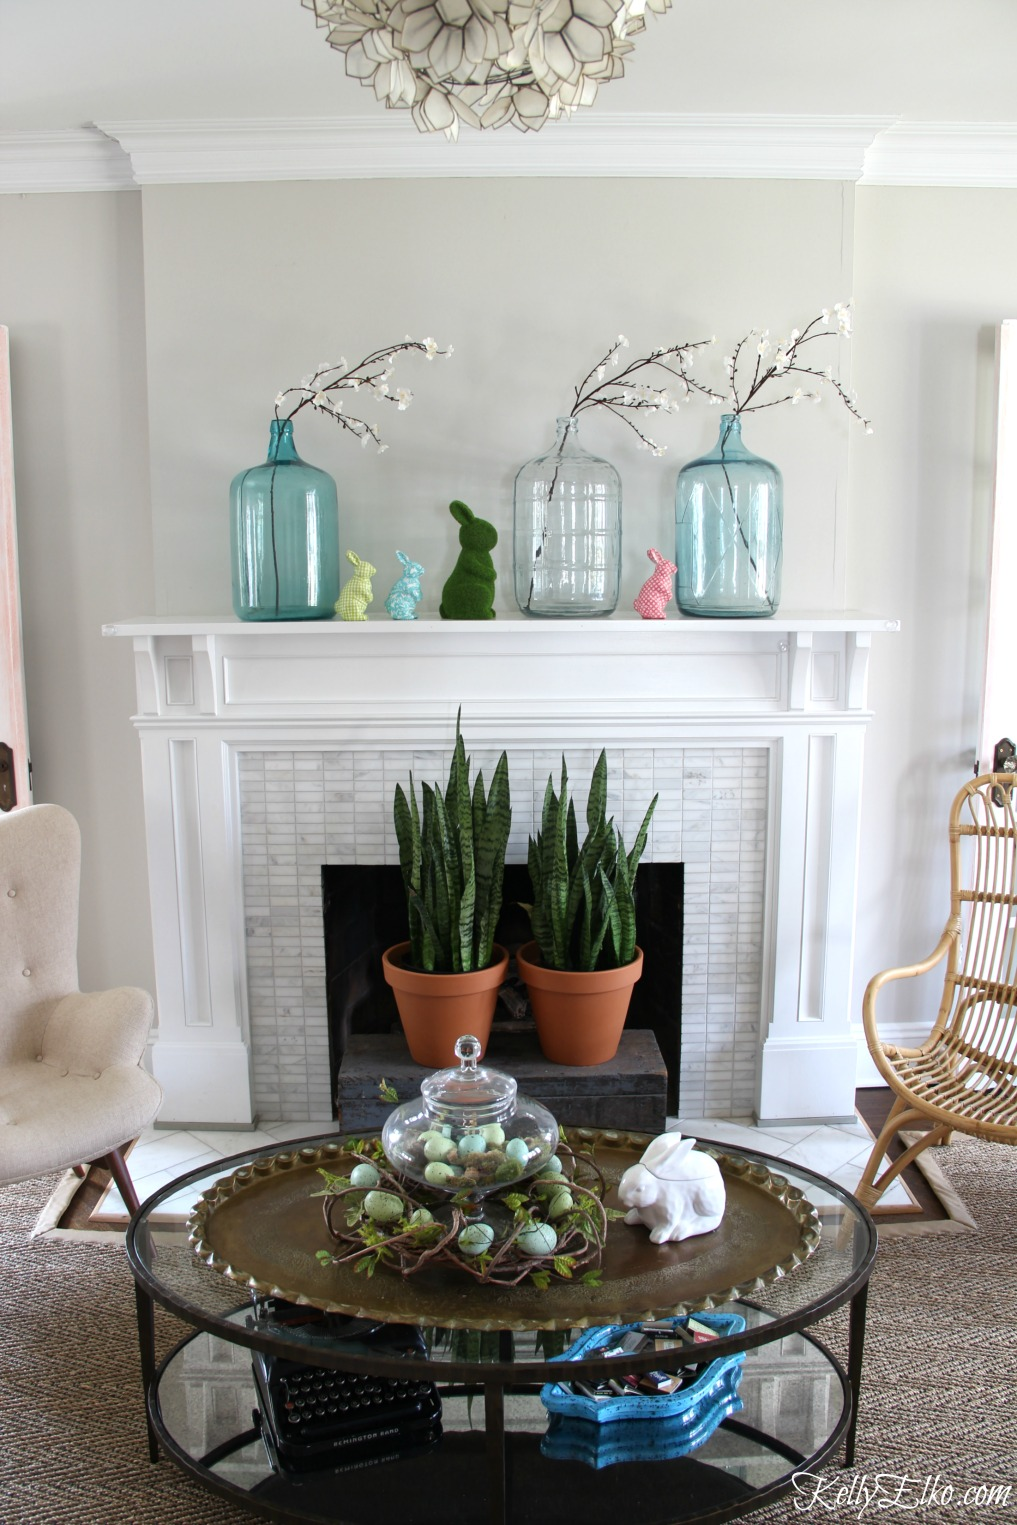 25 Spring Decorating Ideas - love this mantel with vintage glass demijohns, colorful bunnies and snake plants kellyelko.com #spring #springdecor #homedecor #mantel #springmantel #vintagedecor